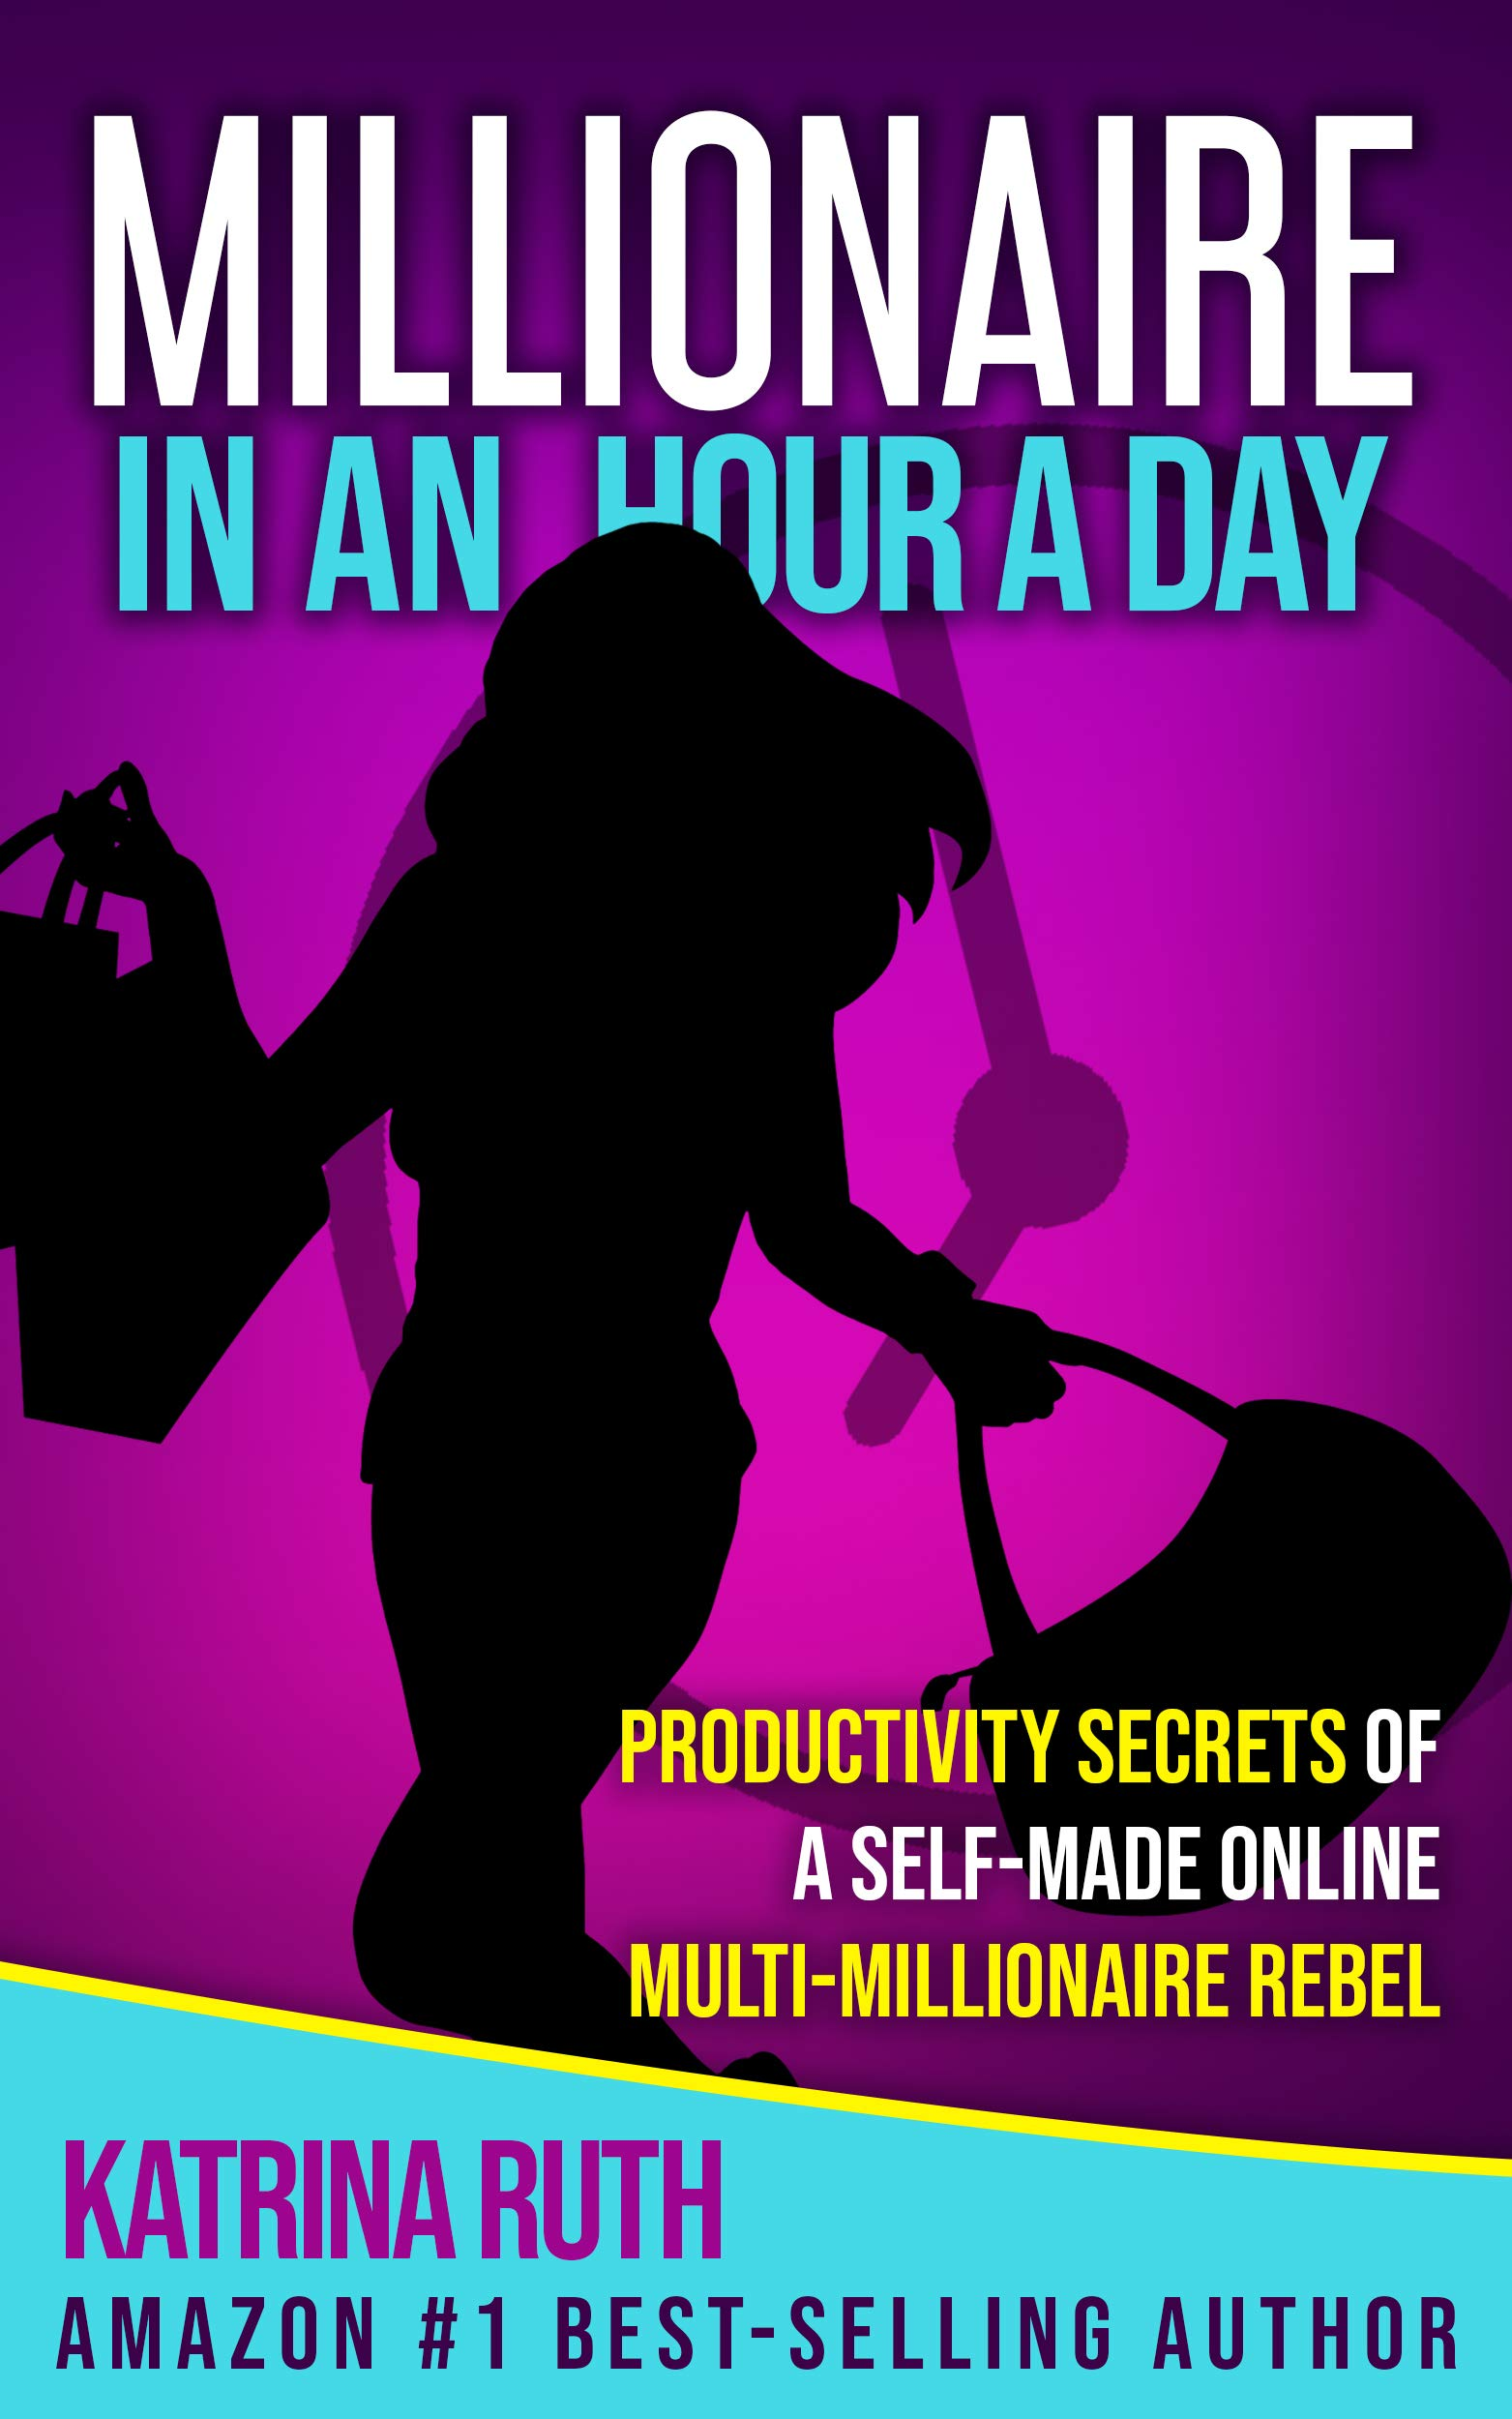 Millionaire in an Hour a Day: Productivity Secrets of a Self-Made Online Multi-Millionaire Rebel